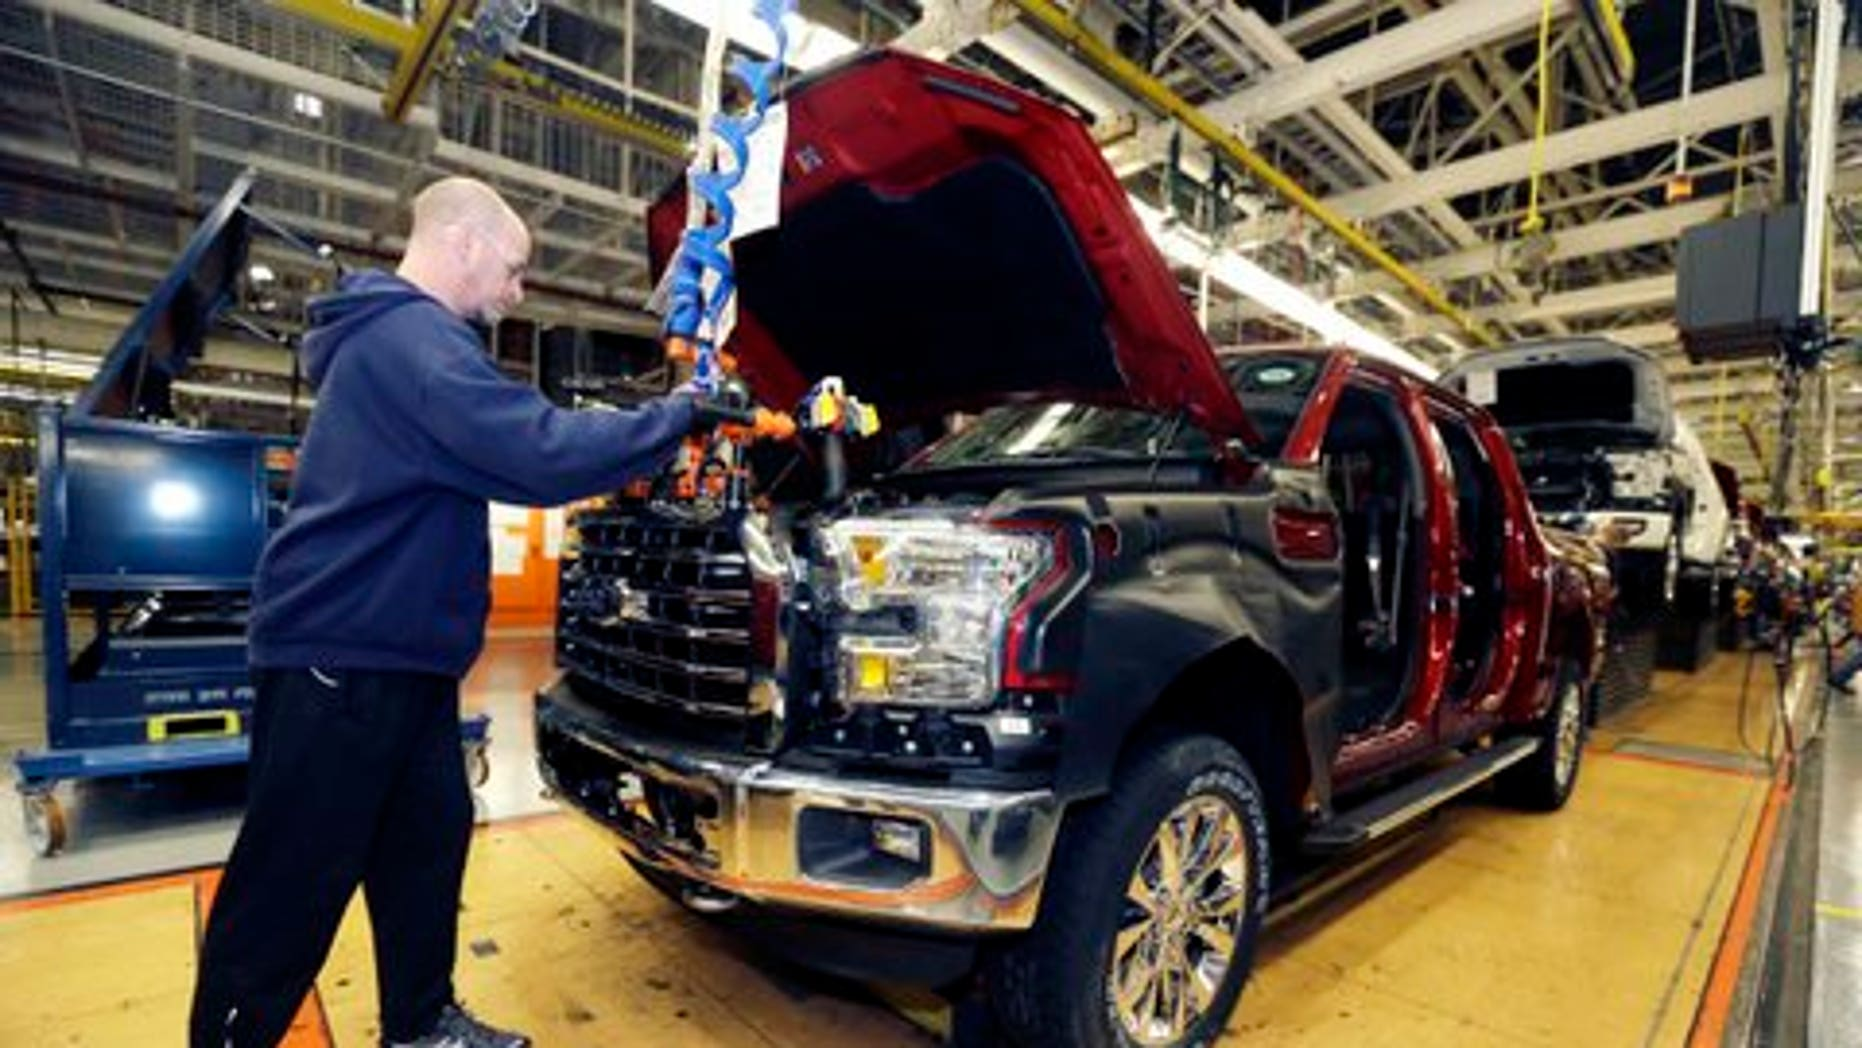 In this Nov. 6, 2014 photo, Chris Lucking installs a grill on a new Ford F-150 truck at the Dearborn Truck Plant in Dearborn, Mich. Itís Ford Motor Co.ís biggest bet in decades: an aluminum-sided F-150 that could set a new industry standard _ or cost the company its pickup truck crown. (AP Photo/Carlos Osorio)